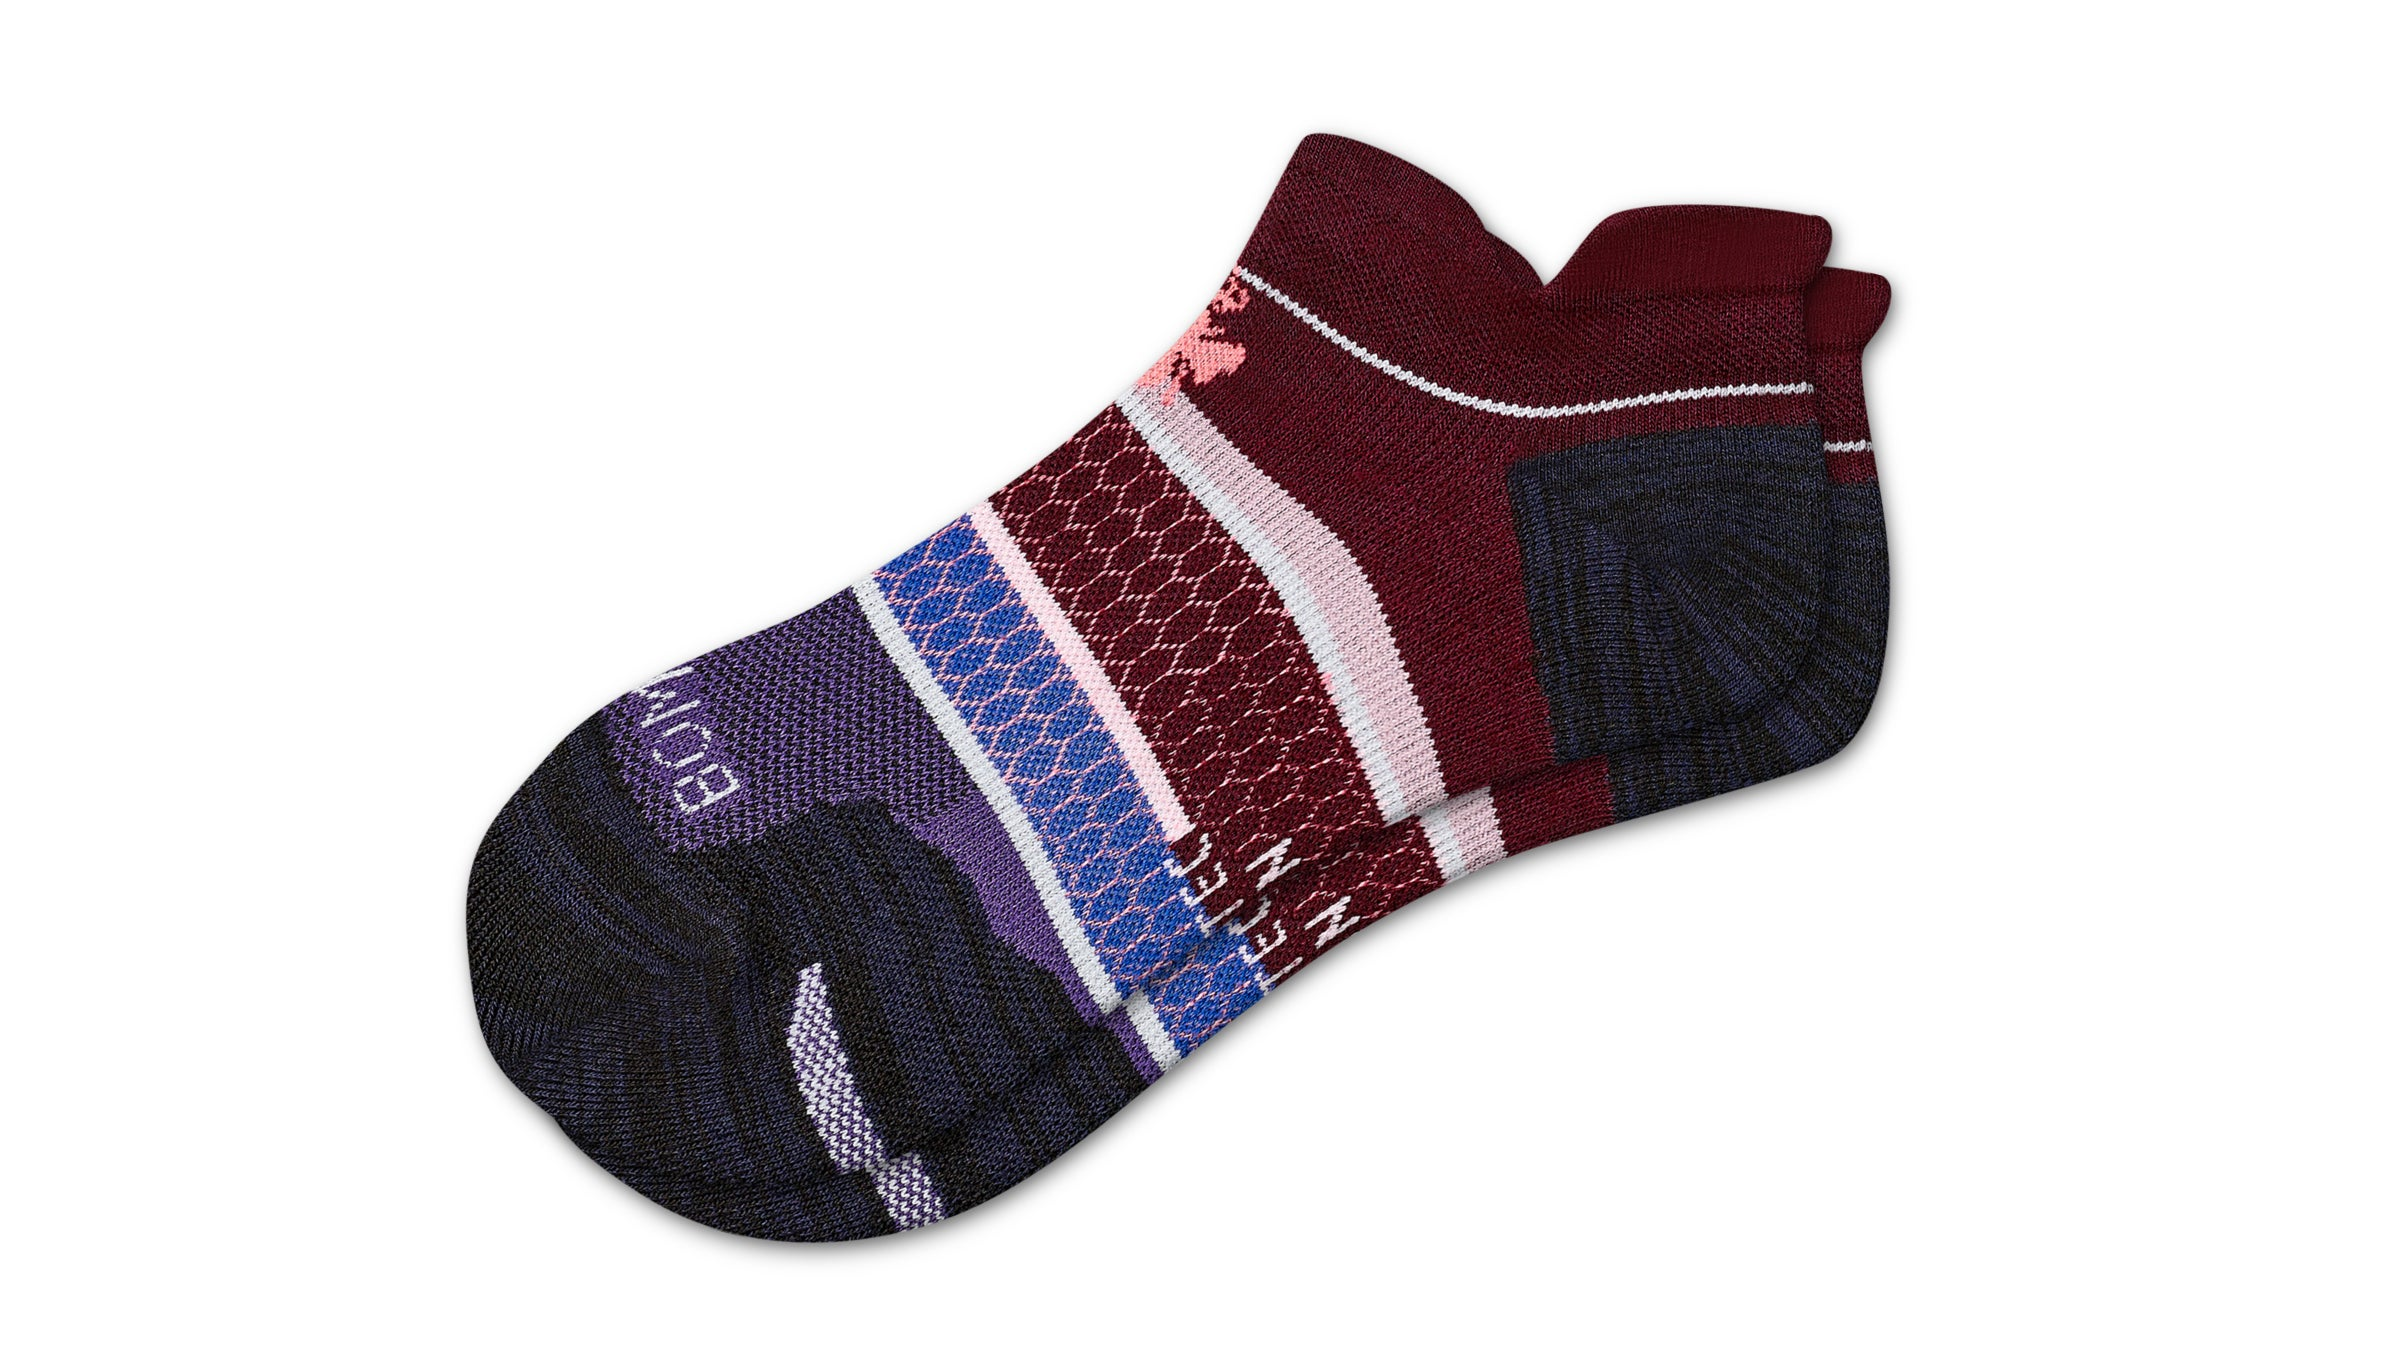 Purple and plum patterned low-cut socks